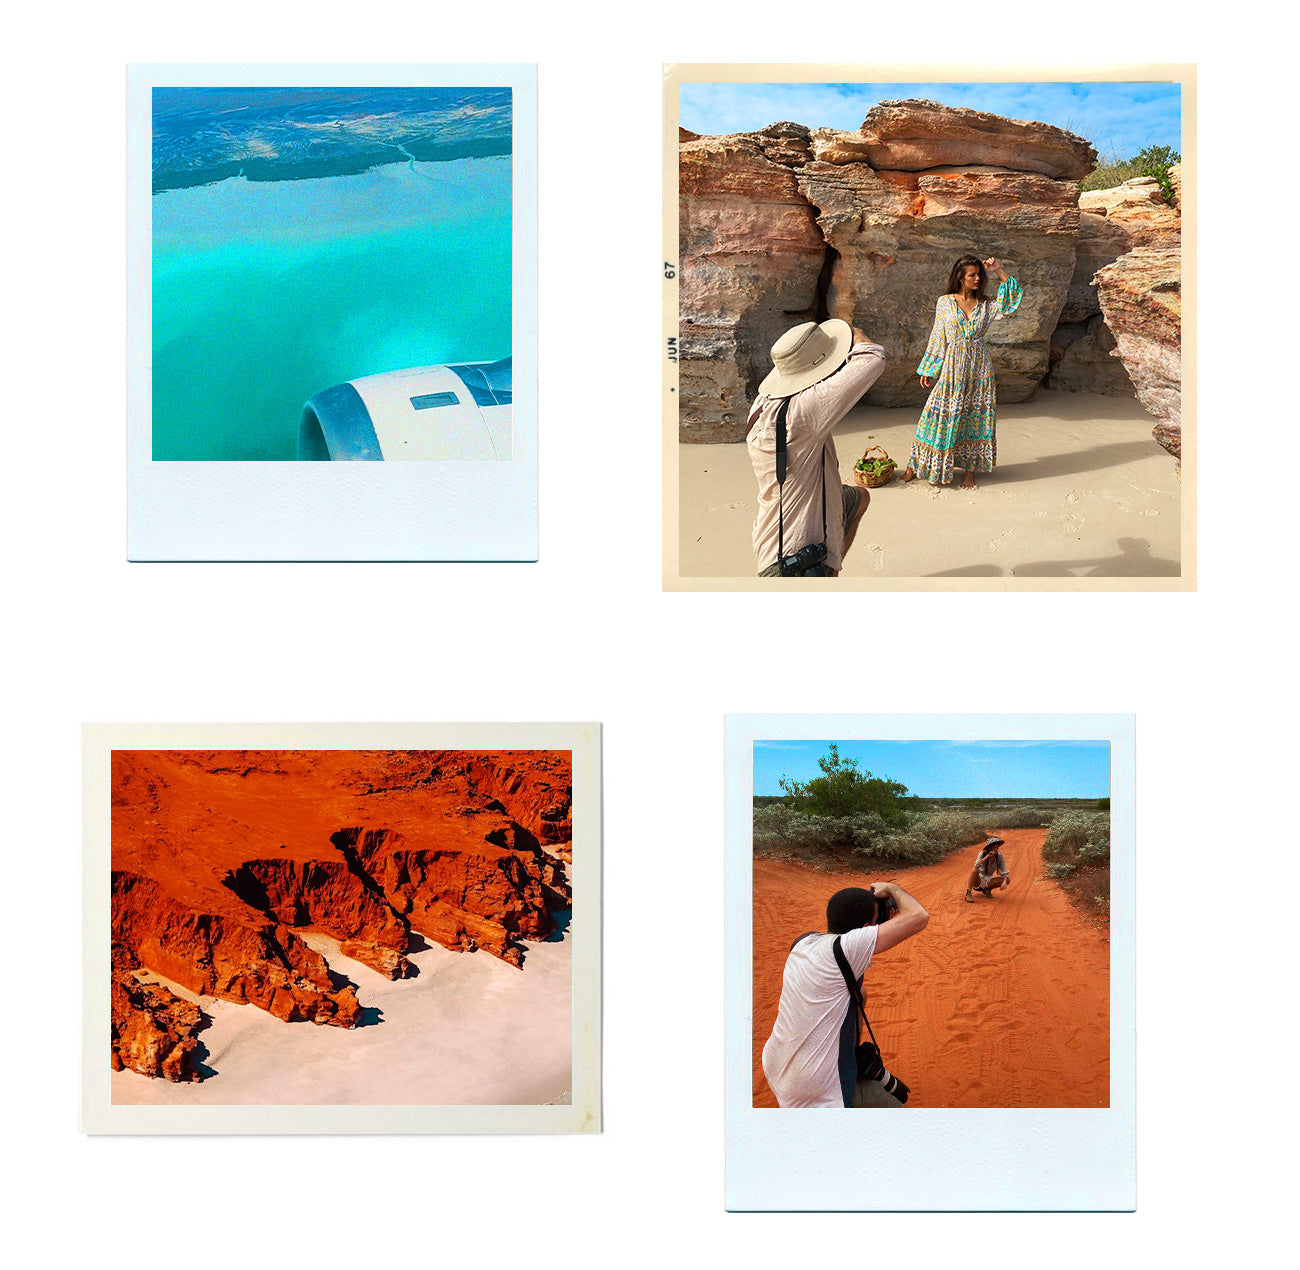 The Arnhem Team travelled to Cape Leveque in WA to shoot the Forget Me Not Campaign